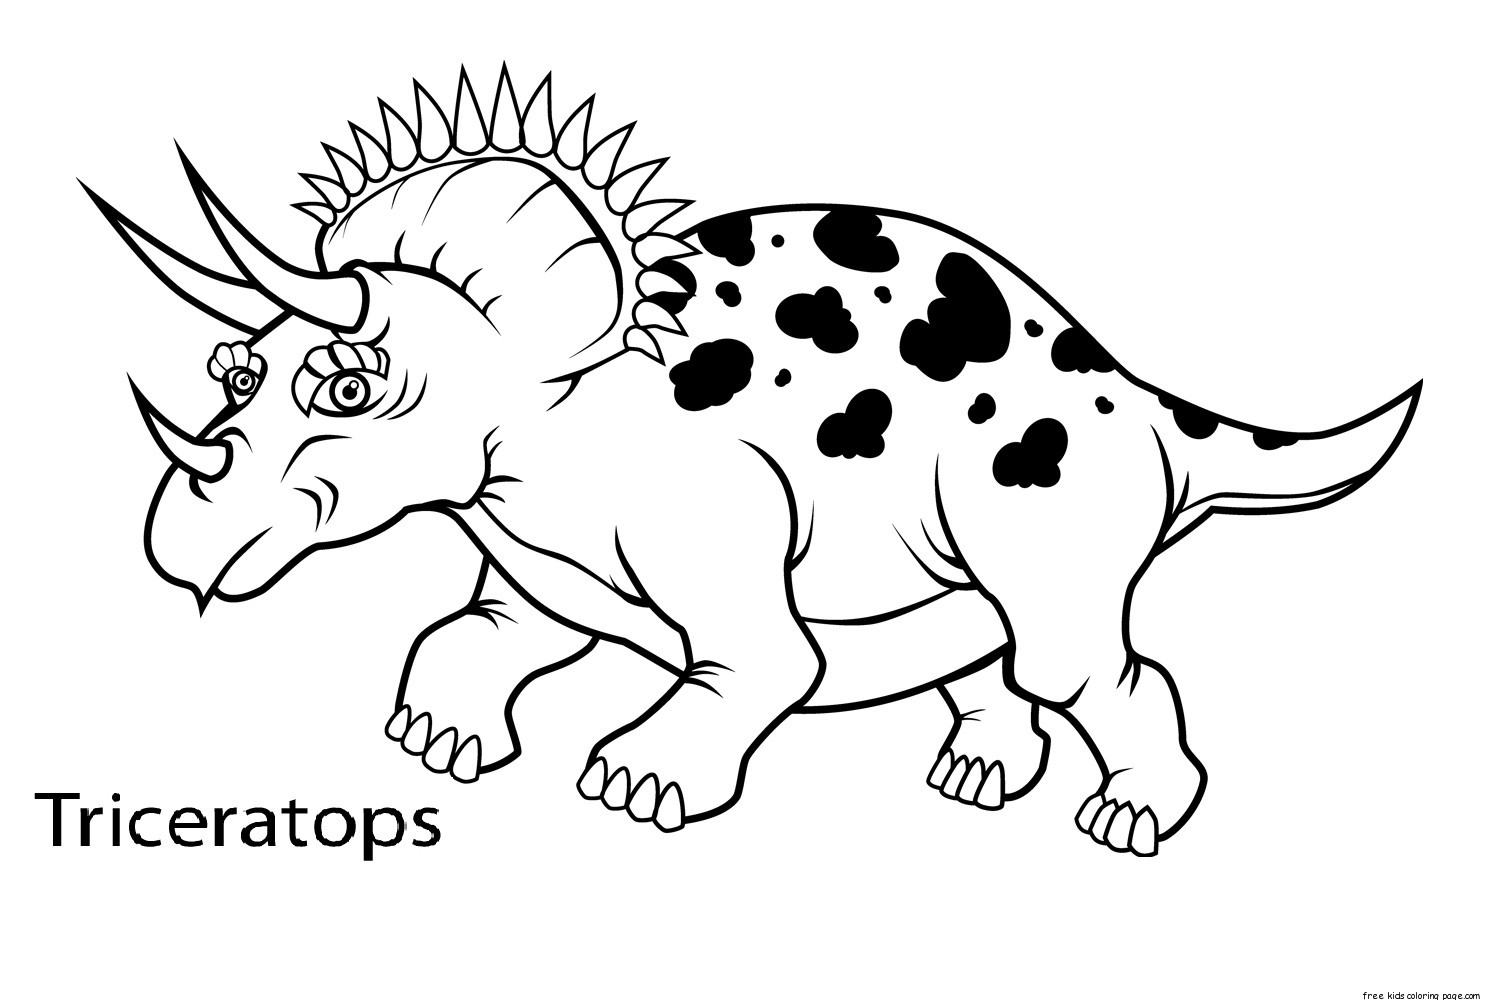 dinosaur print out coloring pages coloring pages dinosaur free printable coloring pages coloring dinosaur print out pages